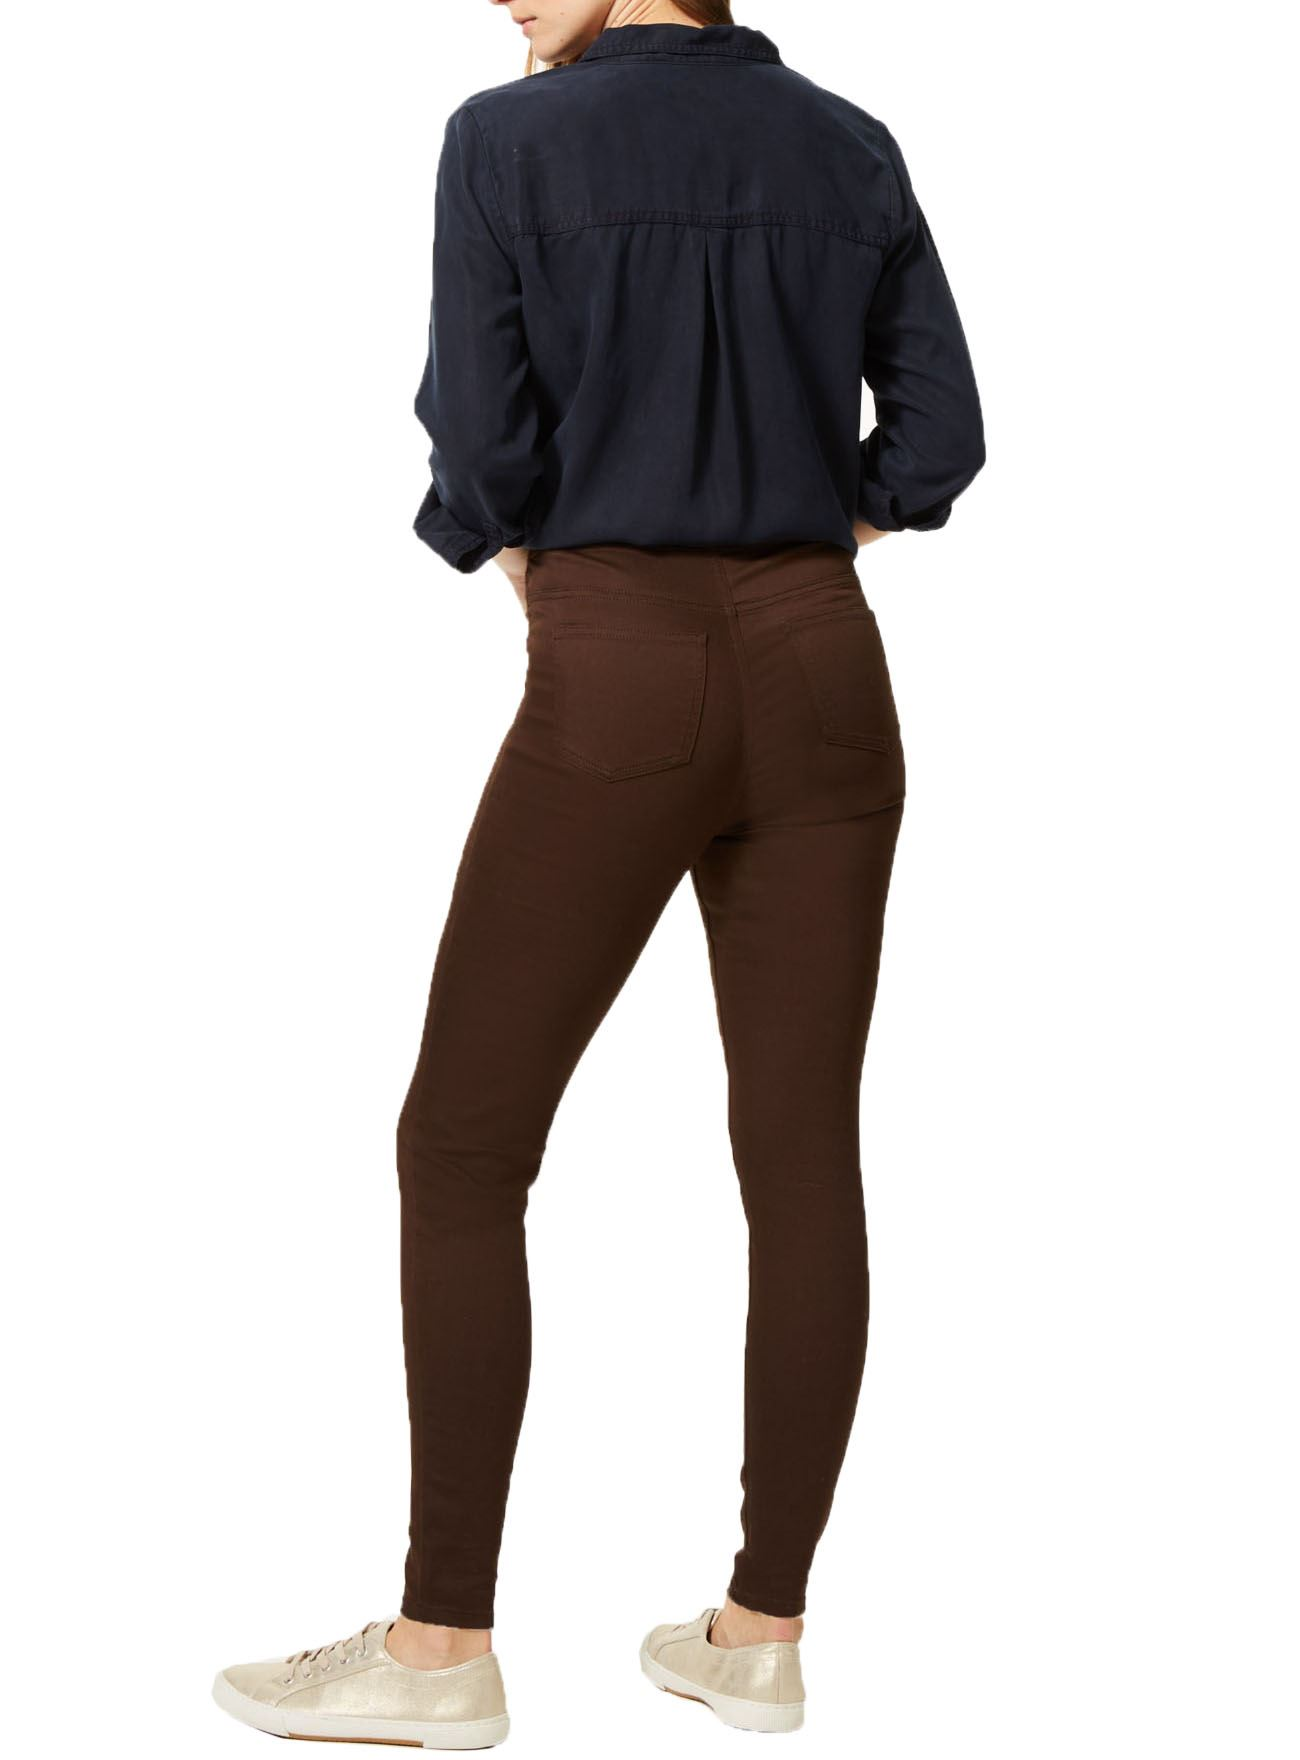 NEW-Ex-M-amp-S-Womens-Stretch-Fit-High-Waist-Skinny-Jeggings-Size-8-10-12-14-16-18 thumbnail 7